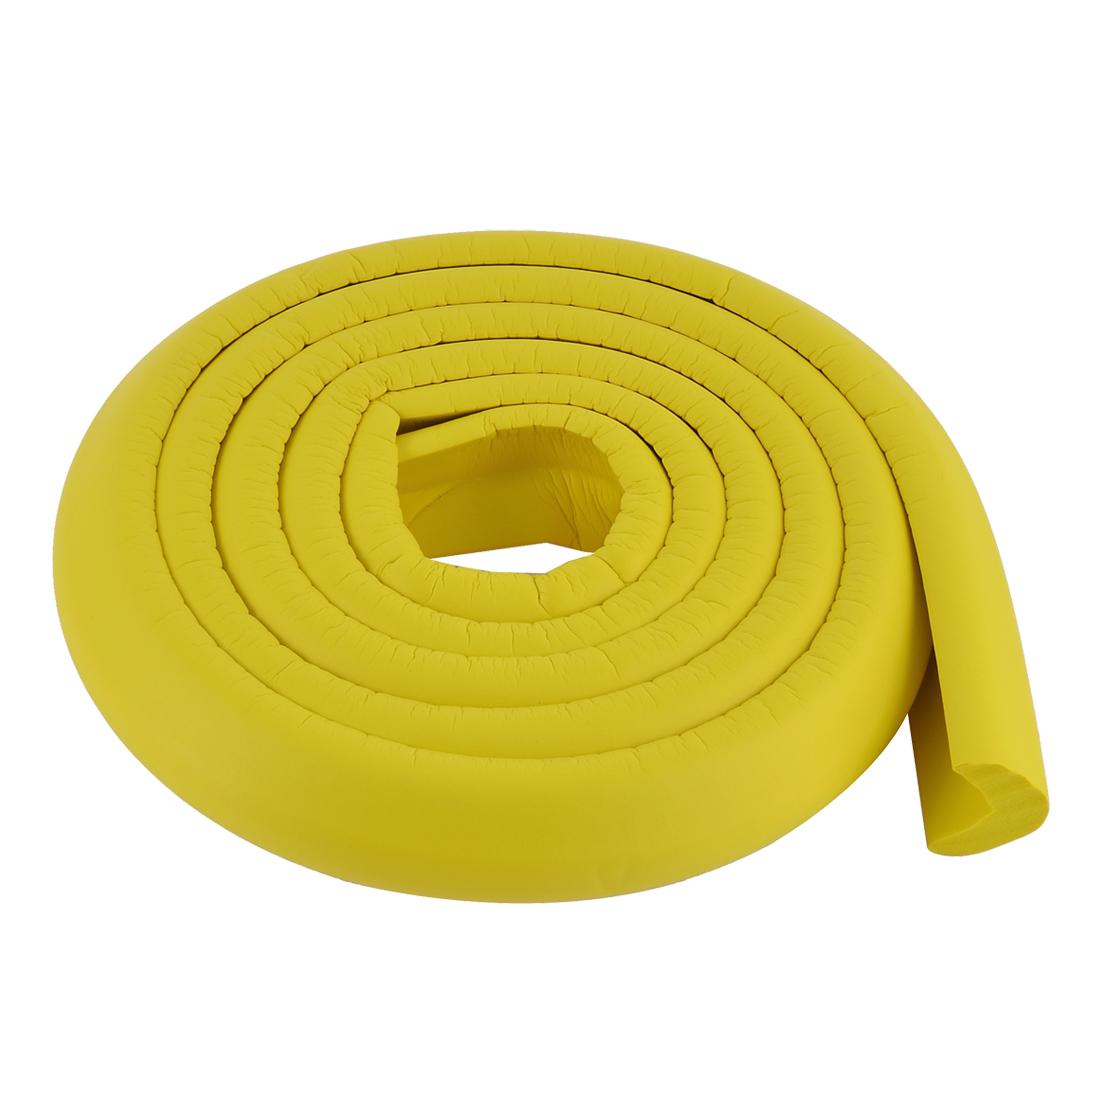 Furniture Table Proofing Corner Edge Guard Protector Cushion Yellow